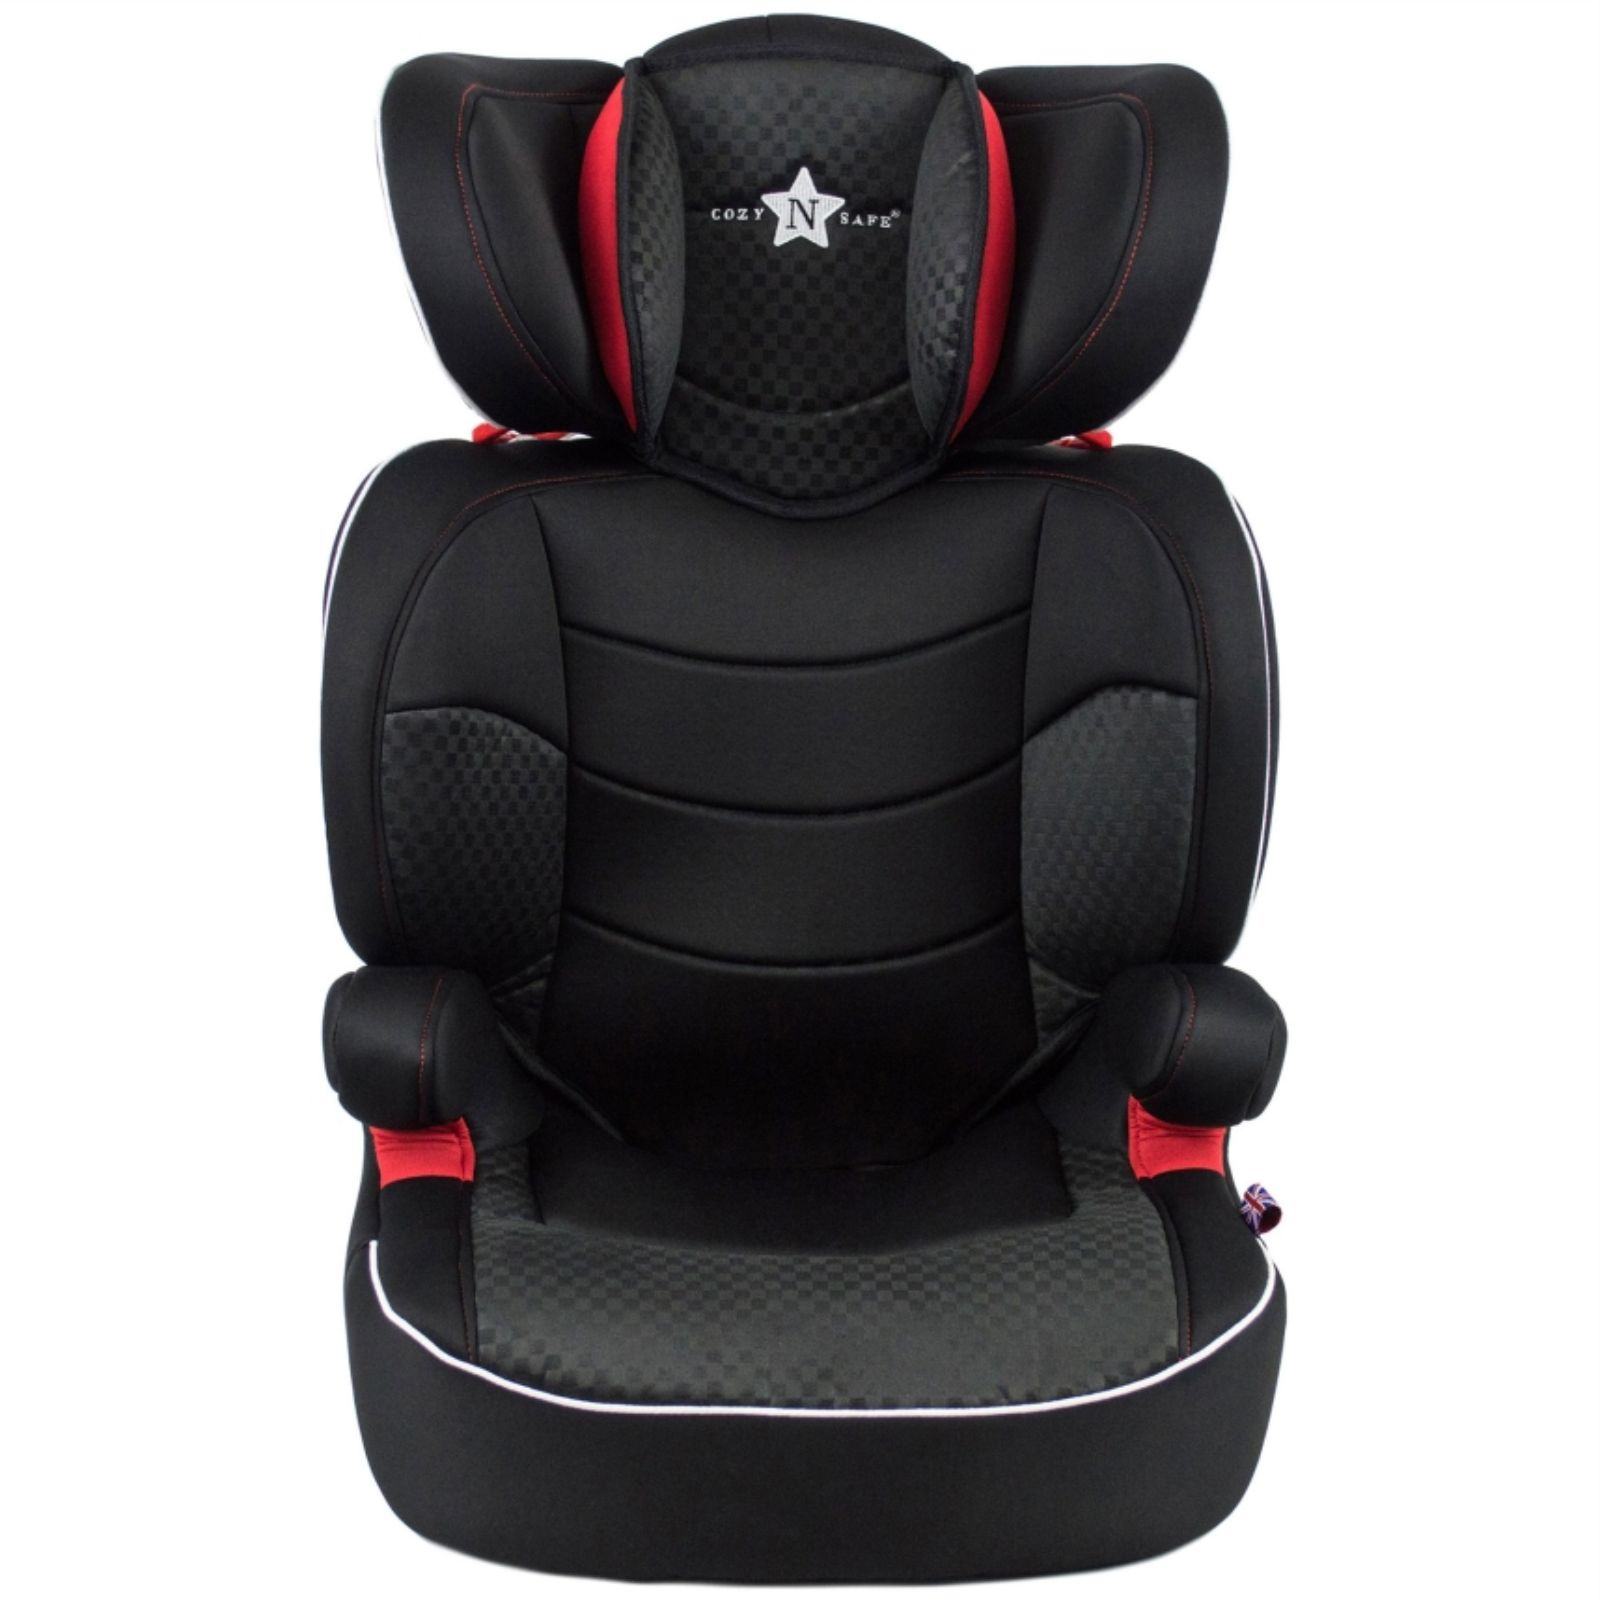 cozy n safe augusta group 2 3 car seat black red buy at online4baby. Black Bedroom Furniture Sets. Home Design Ideas